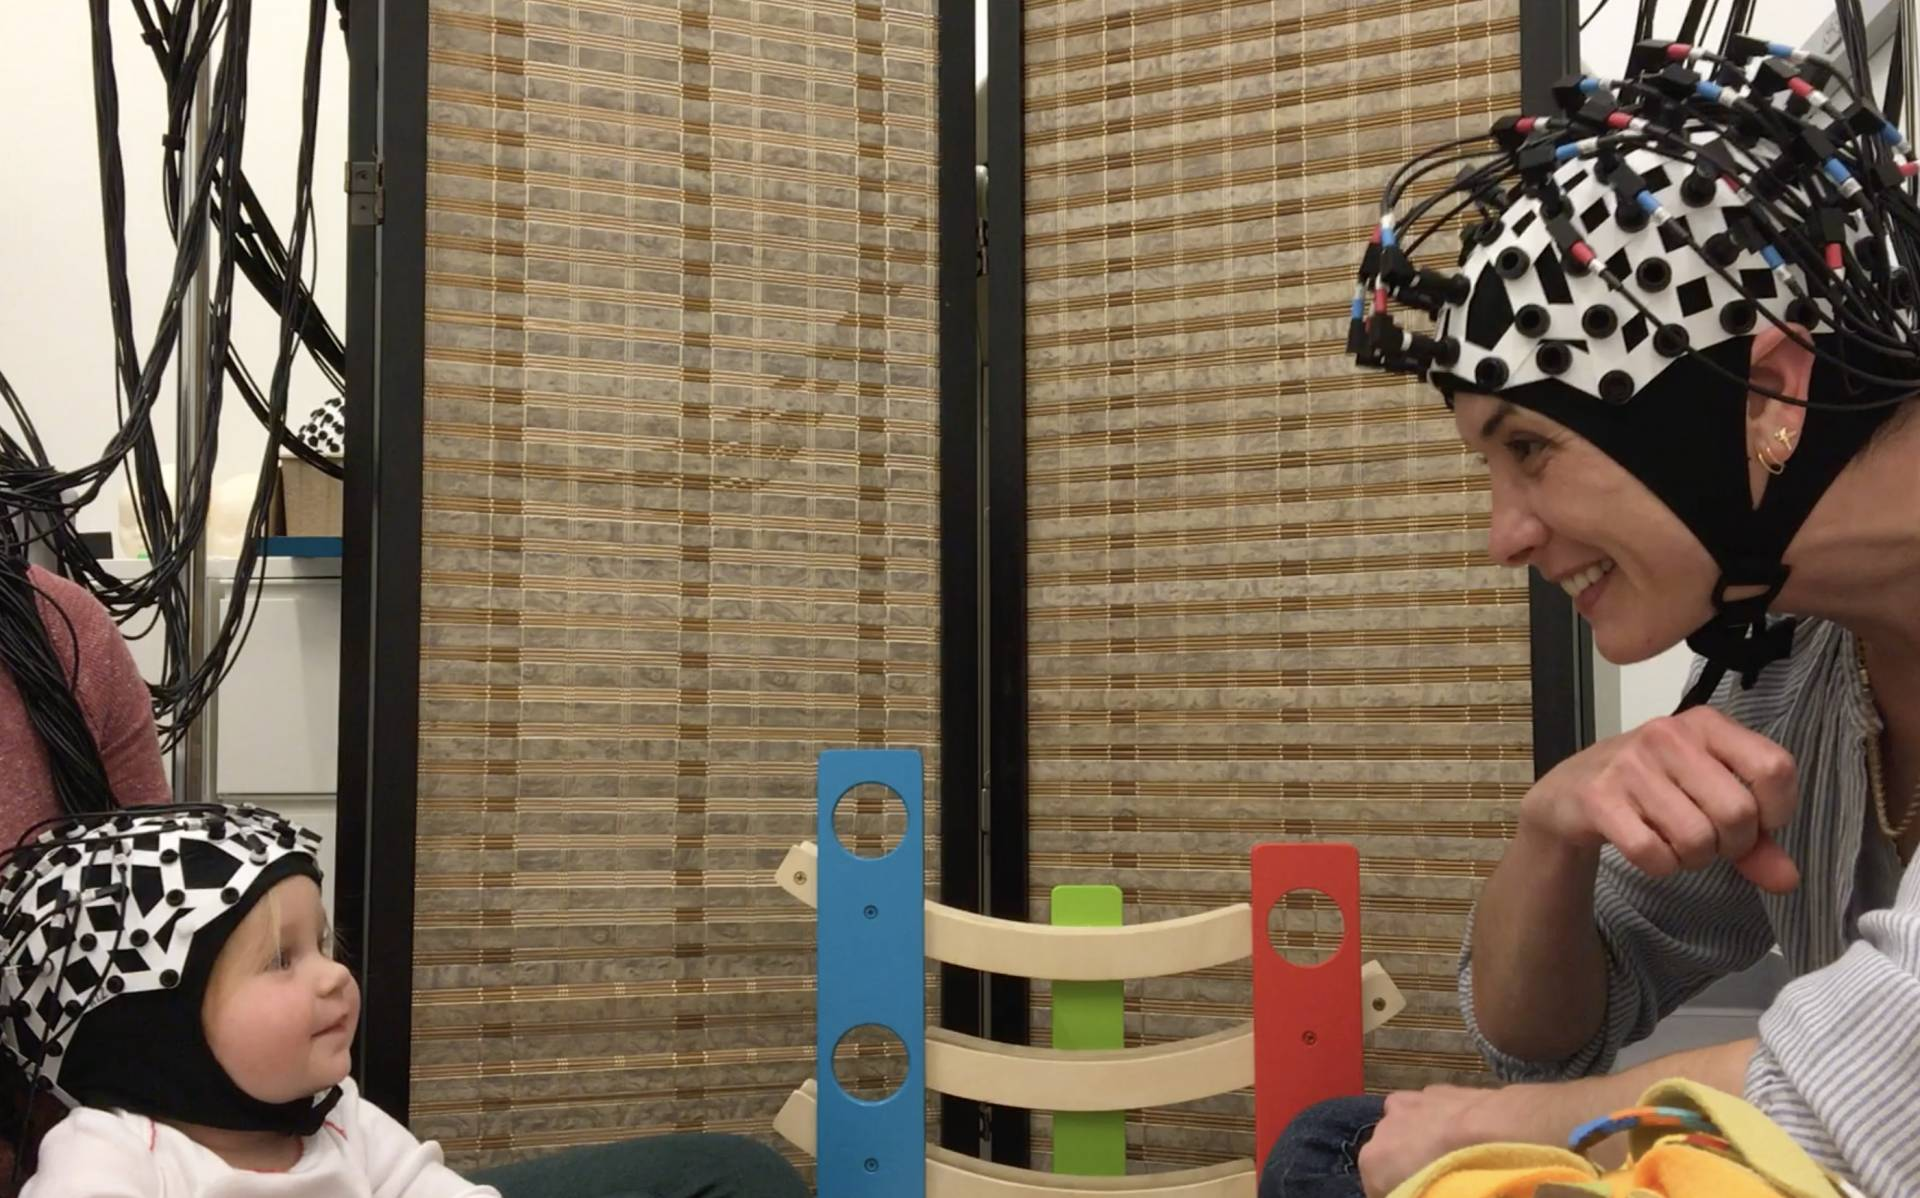 A baby and a researcher wear brain wavelength-measuring devises on their heads while making eyecontact during play